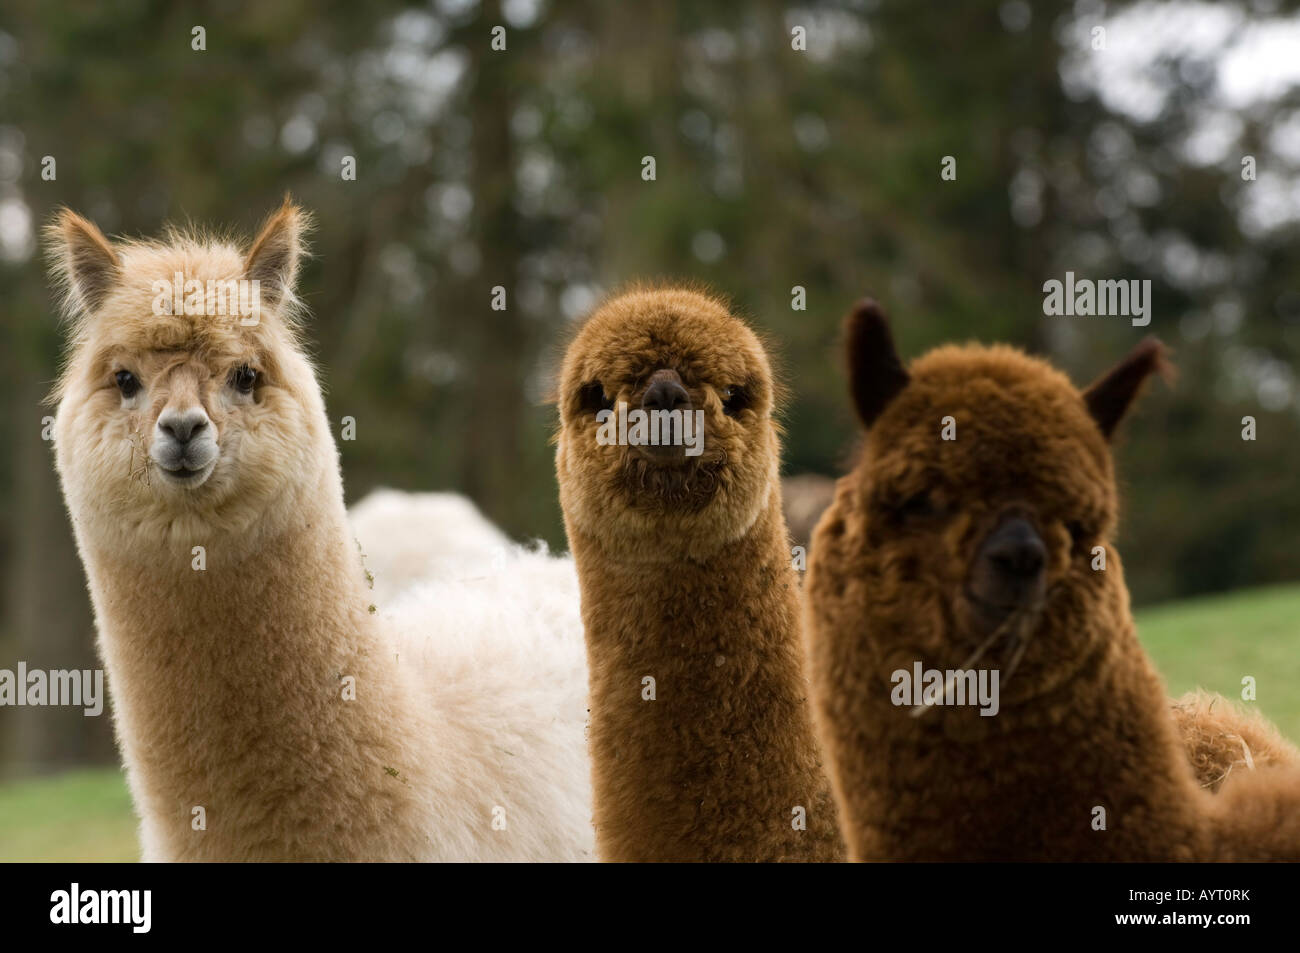 Alpaca Lama pacos adults in field during winter Cumbria - Stock Image